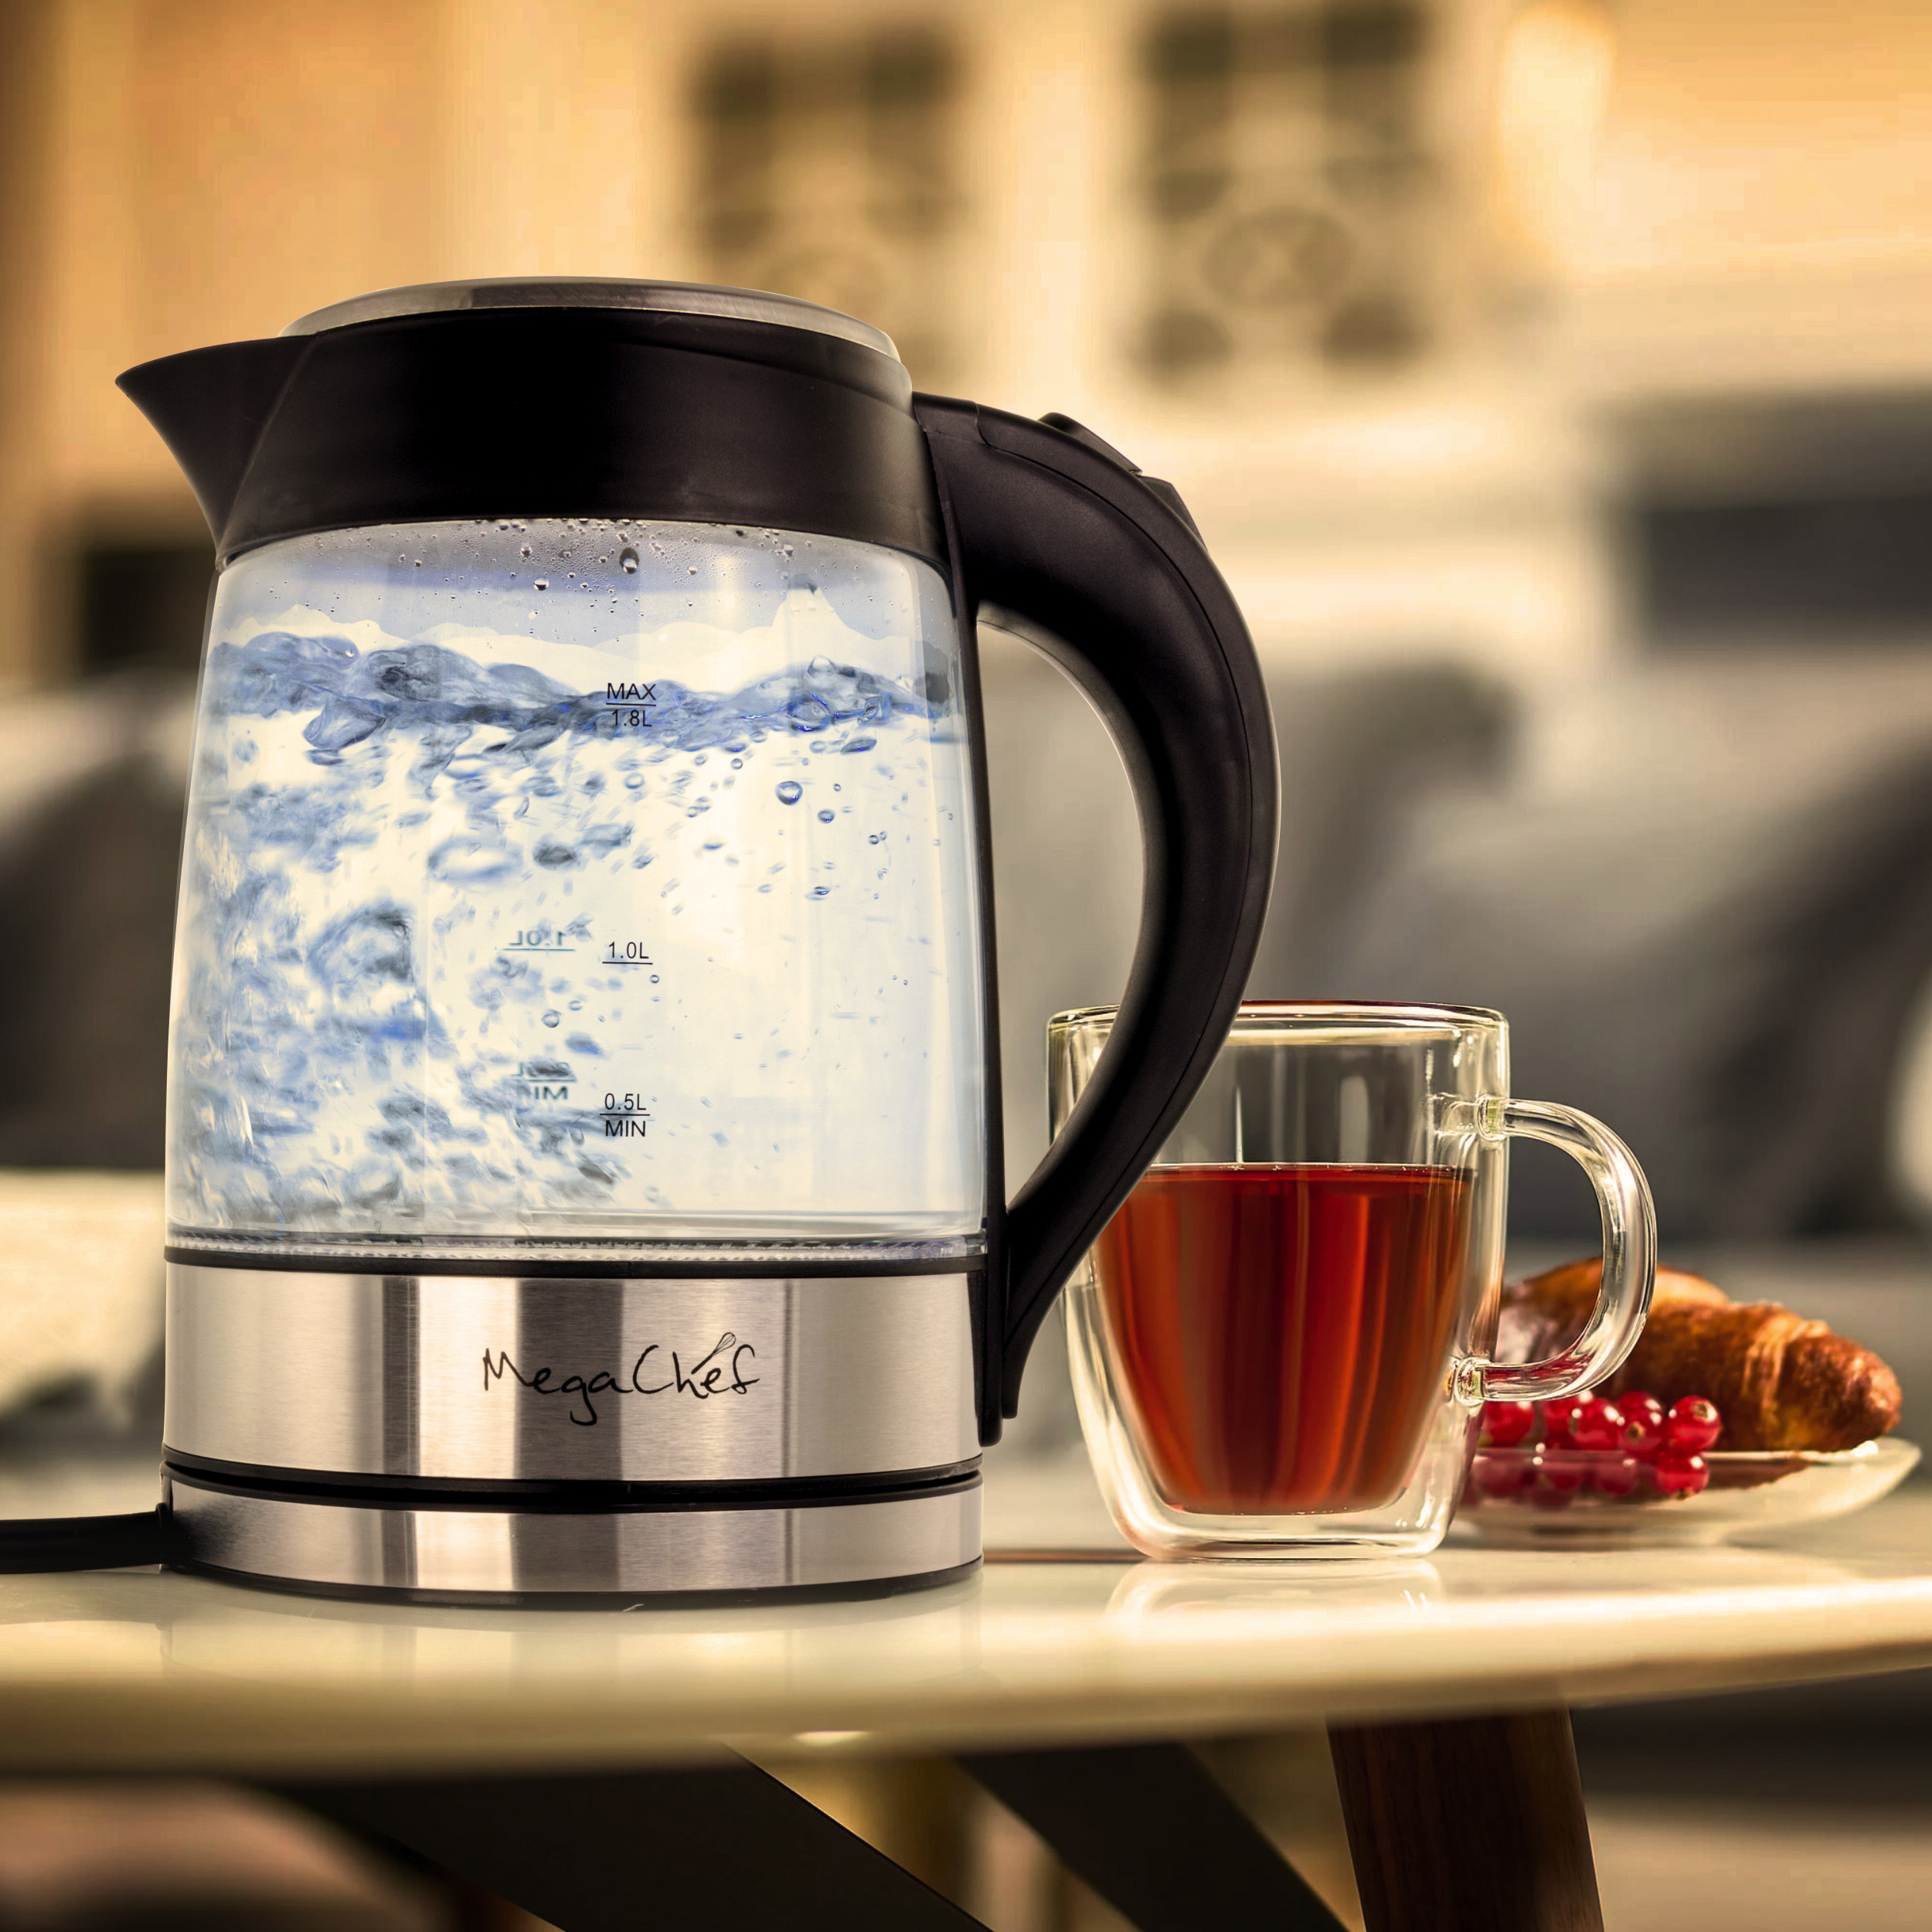 a glass and stainless steel electric kettle boiling water next to a cup of tea